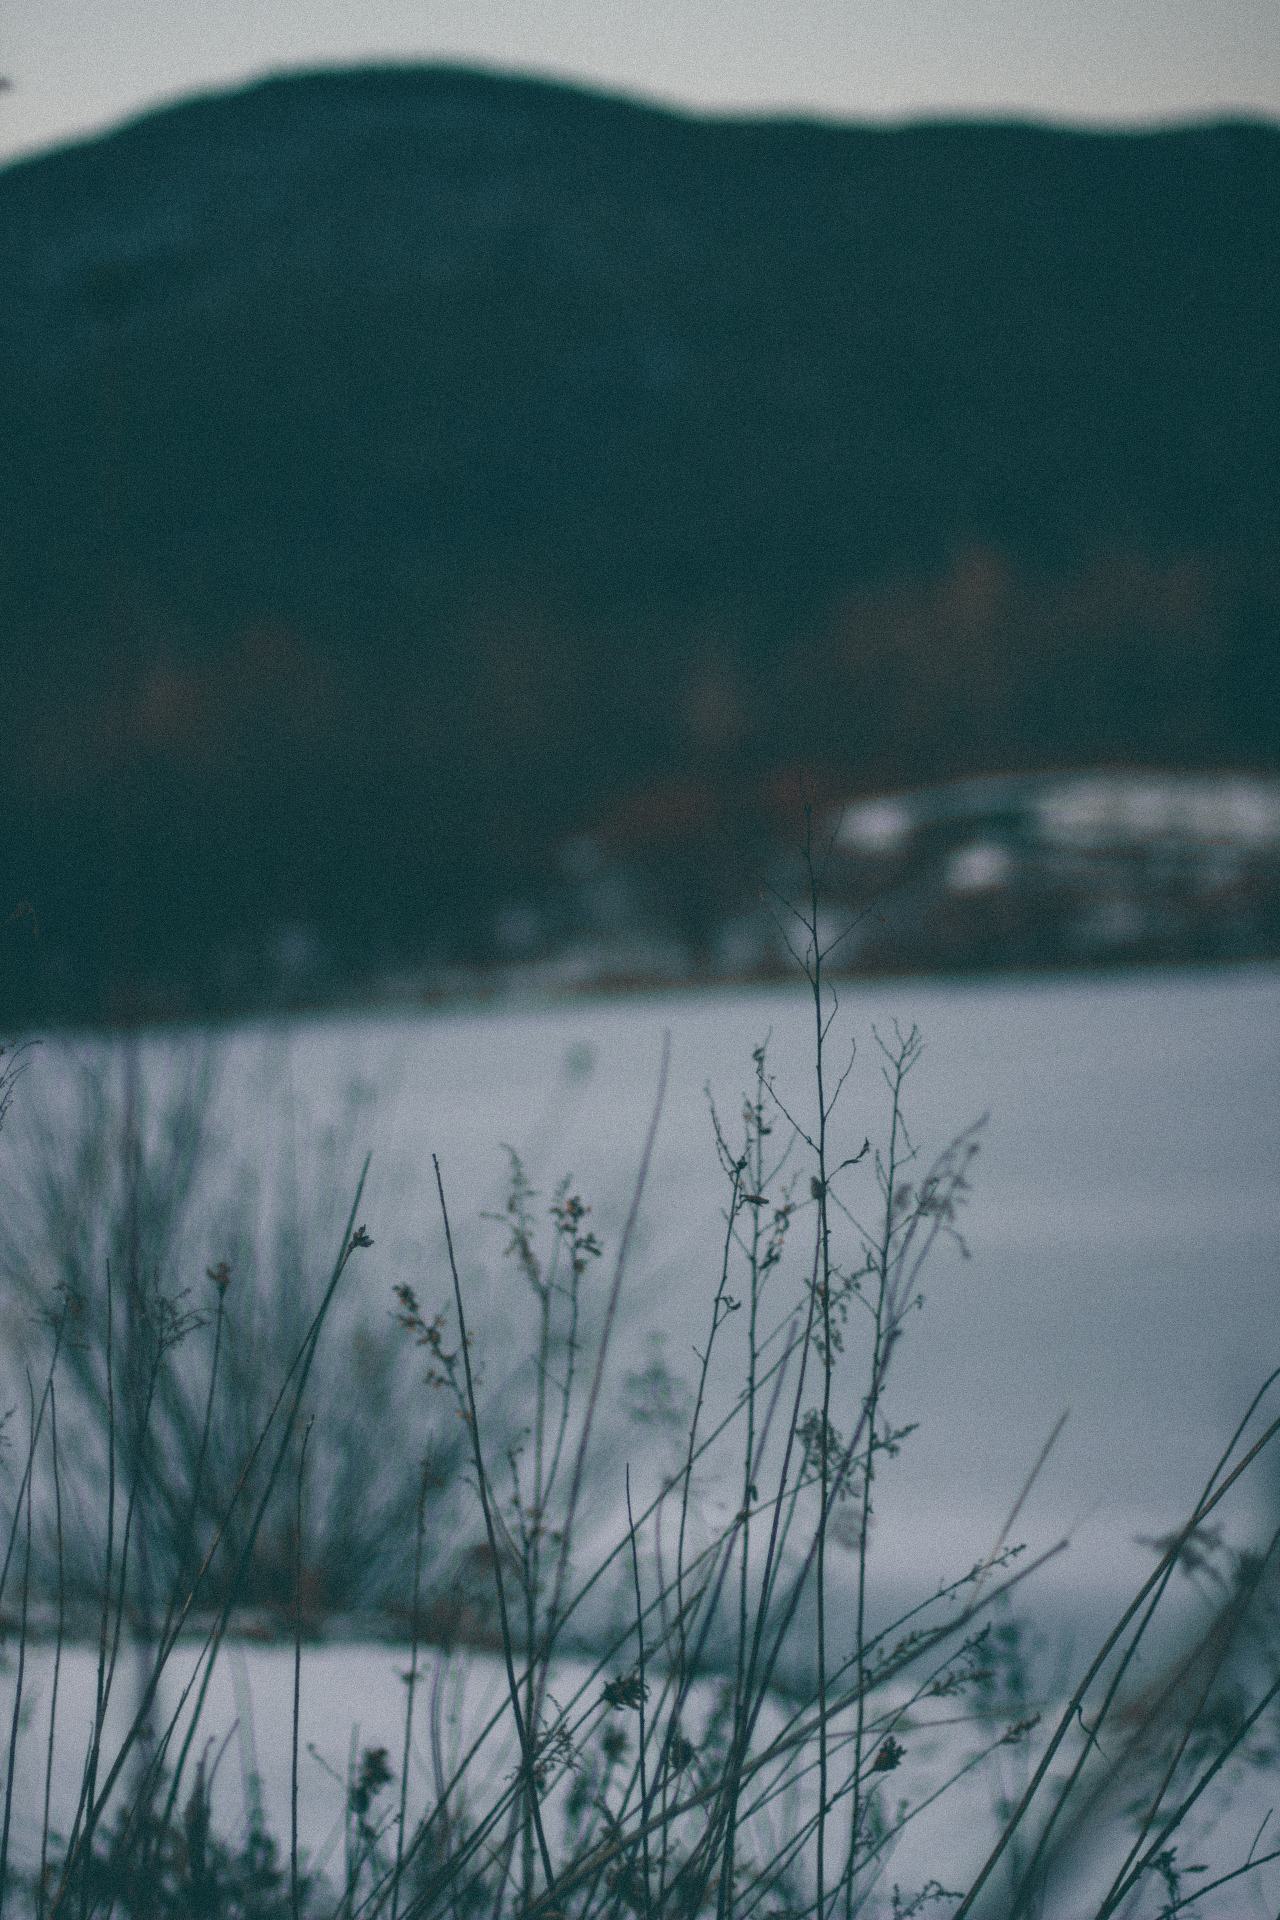 Standing as a ghost before the echoing void // Part 11 #nature photography#empty spaces#bleak#ice#cold aesthetic#winter gothic